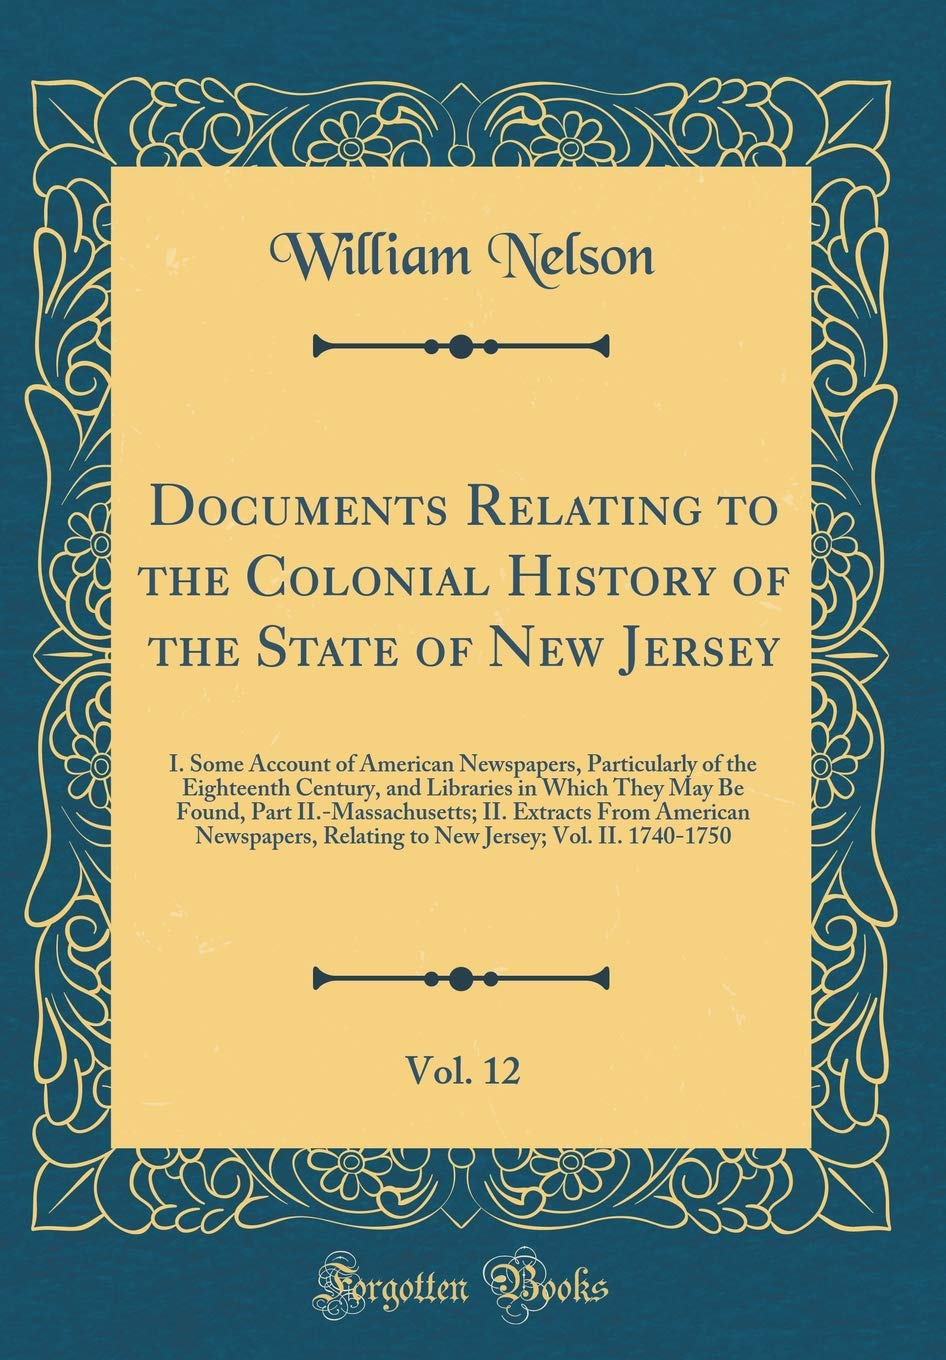 Download Documents Relating to the Colonial History of the State of New Jersey, Vol. 12: I. Some Account of American Newspapers, Particularly of the Eighteenth ... II. Extracts from American Ne pdf epub